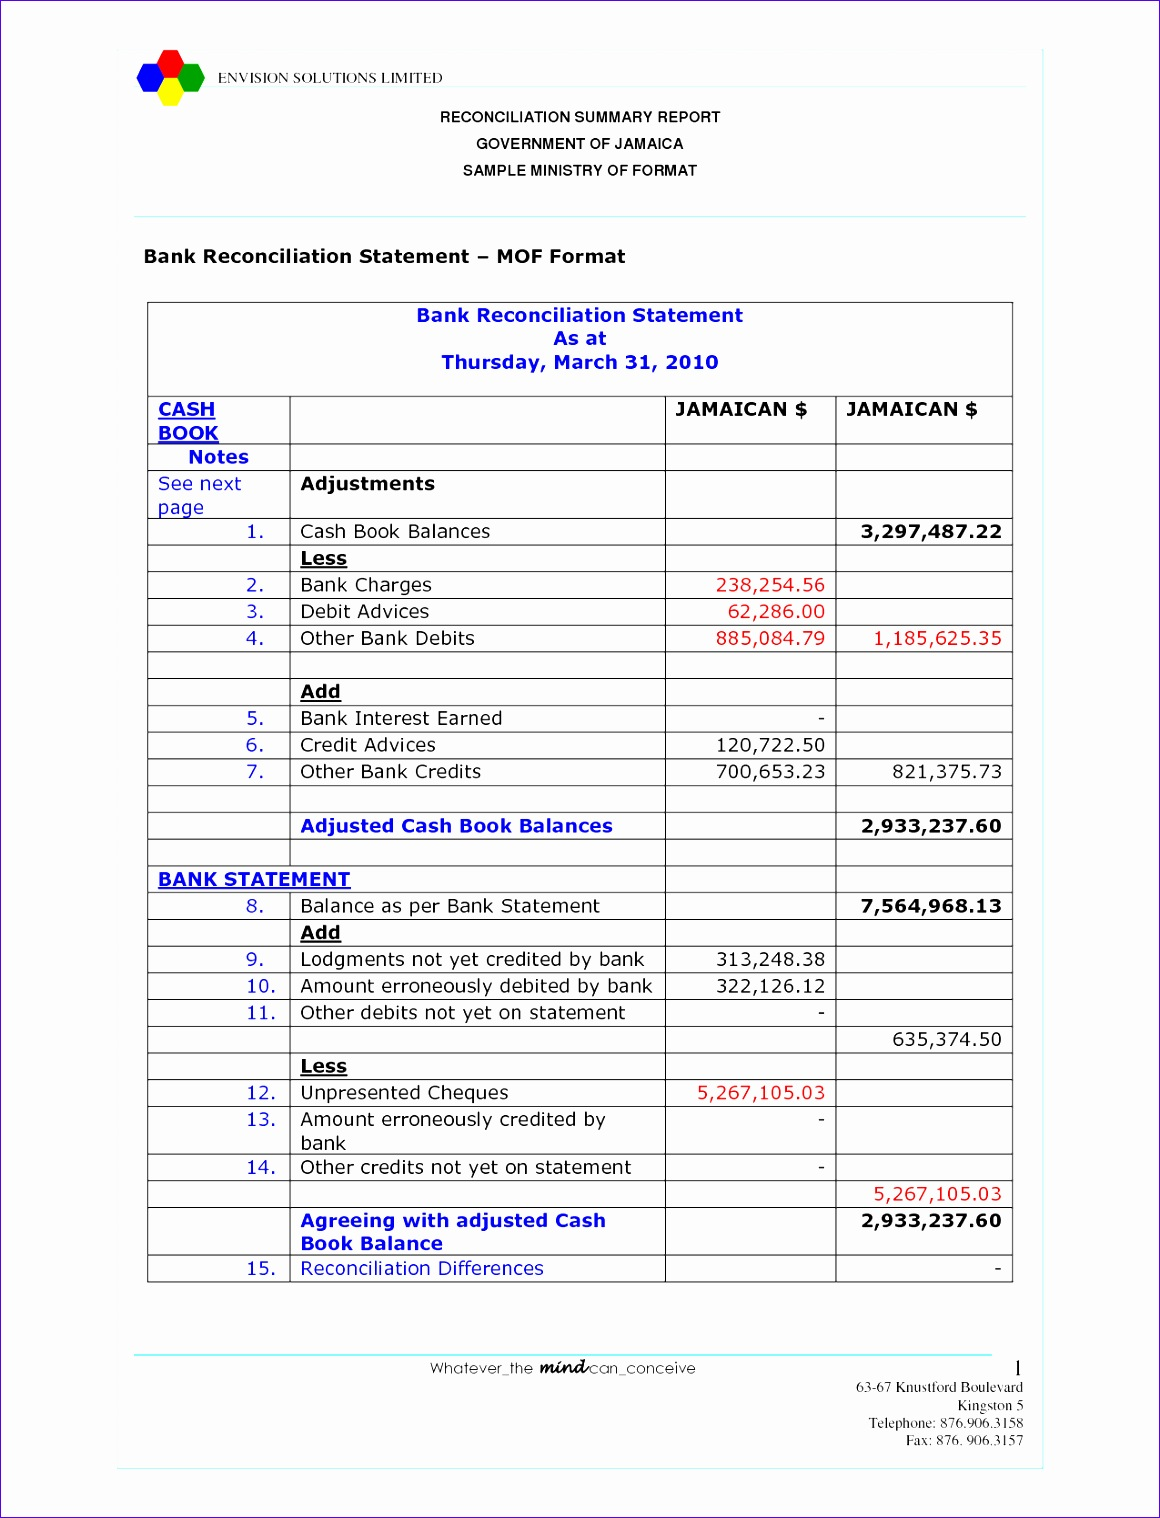 Bank Statement Template Excel N6orr Lovely Bank Statement Reconciliation Worksheet Chriswoodfans 12751650